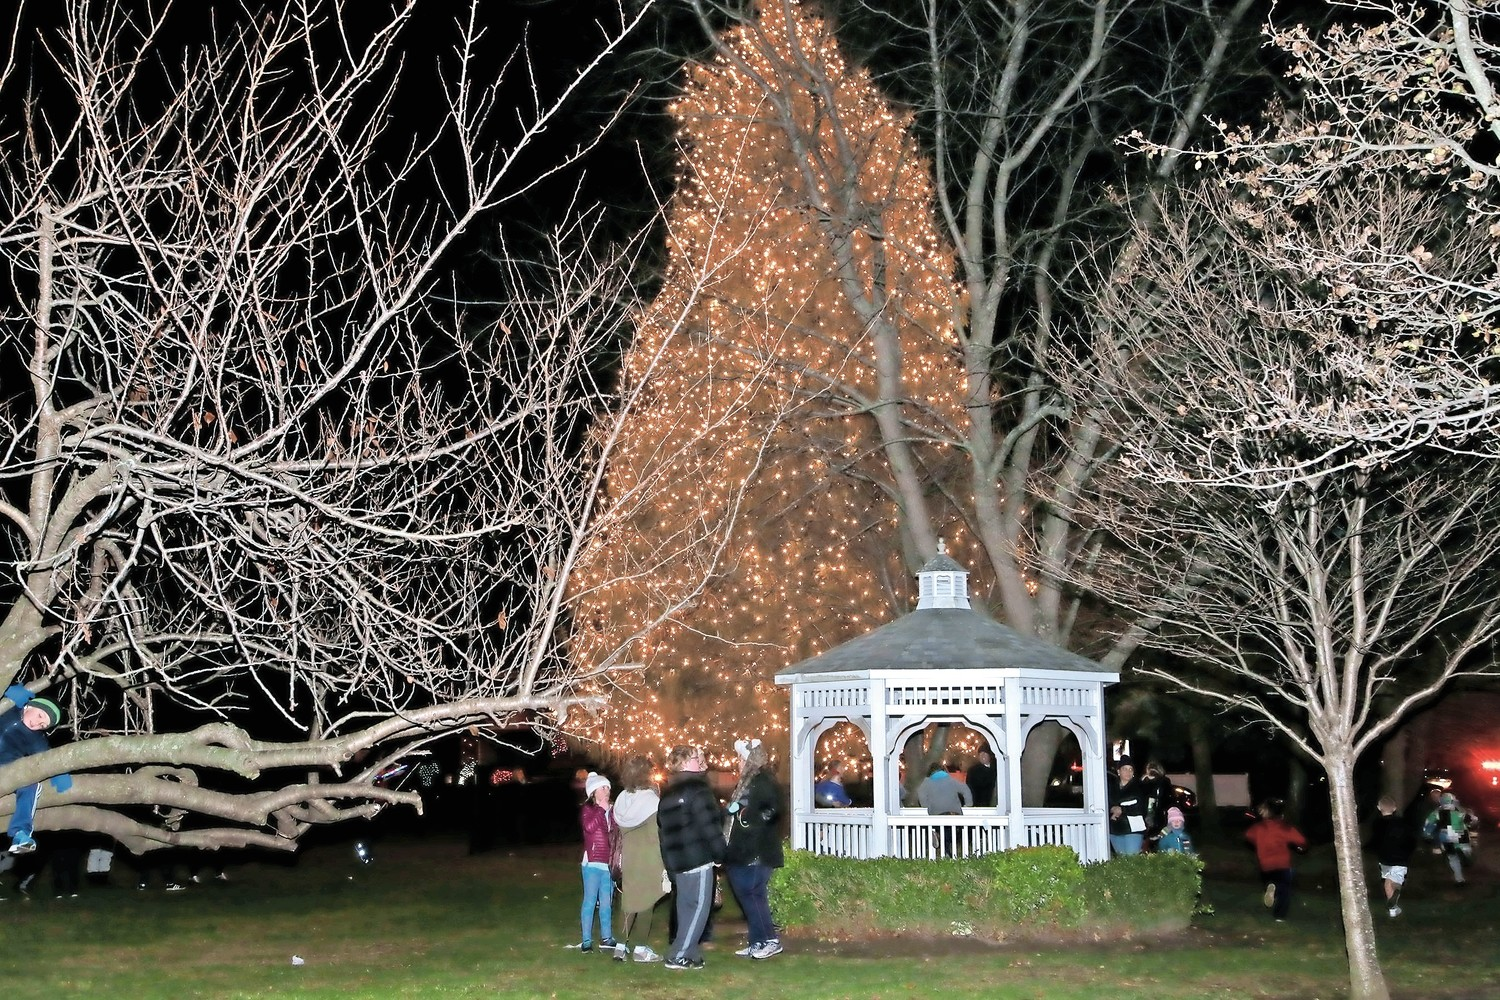 The tree lit up the village green.